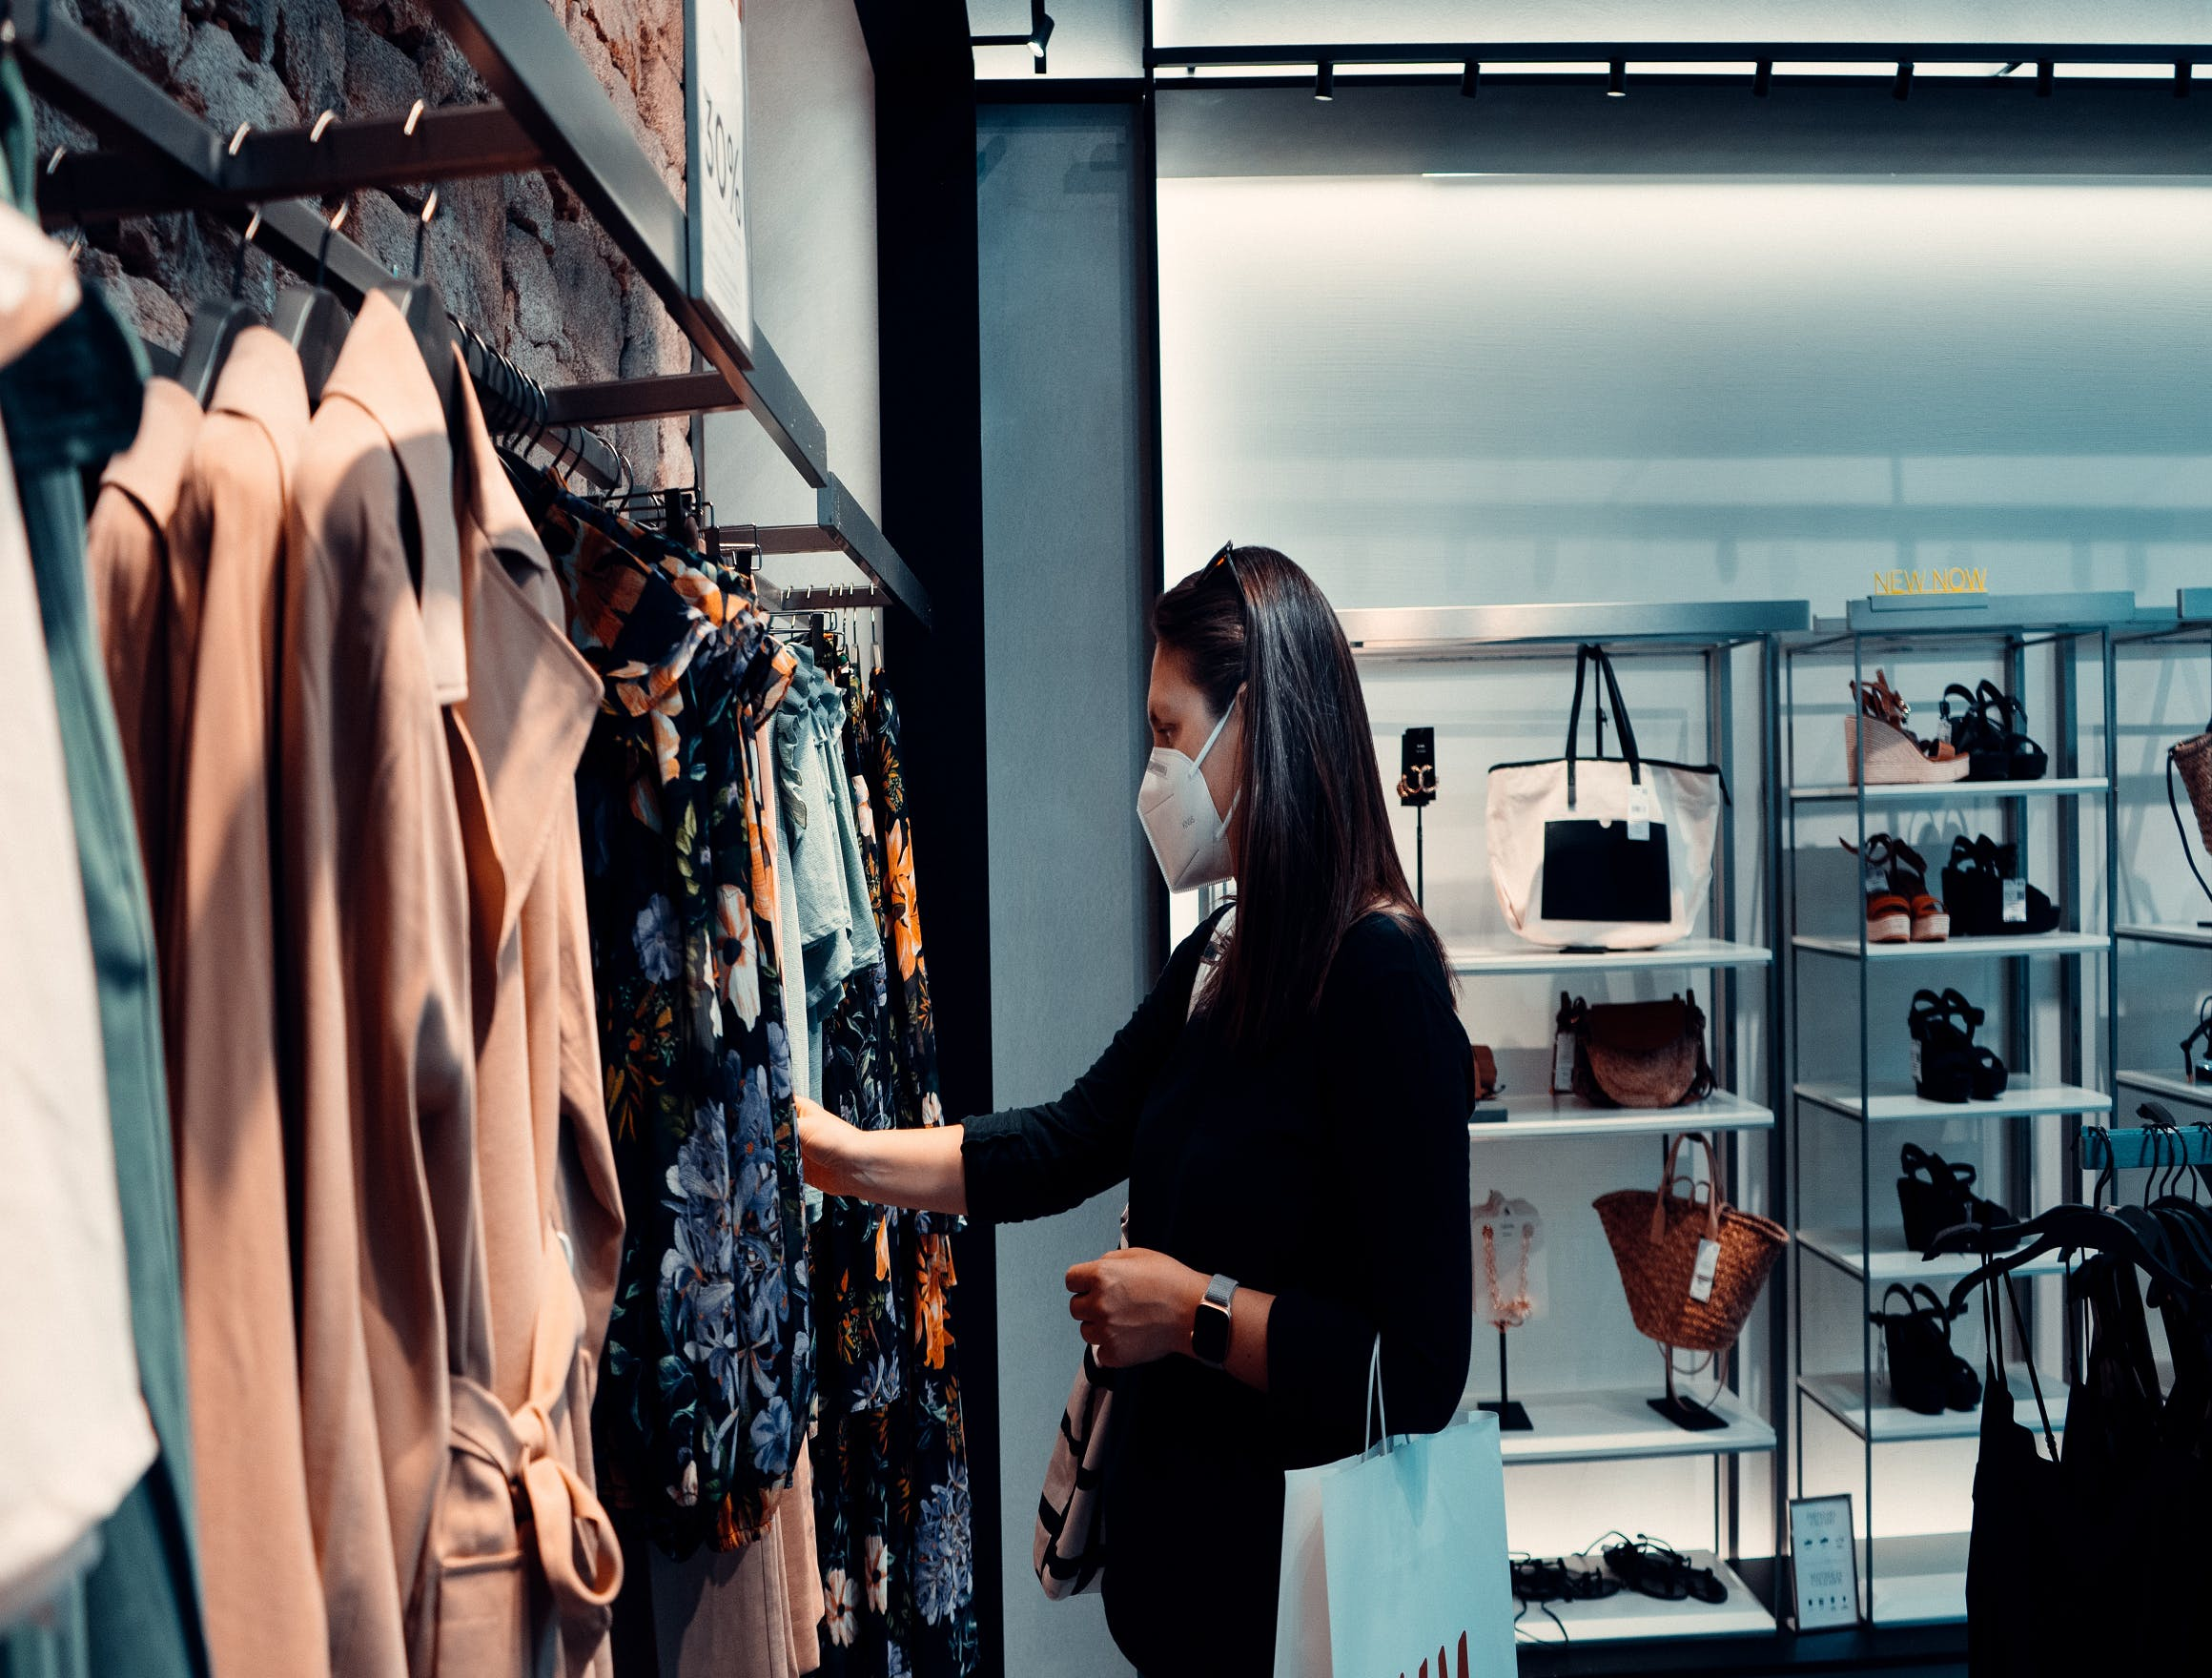 Customer choice, supported by clienteling, should be at the heart of retailers' post pandemic strategies